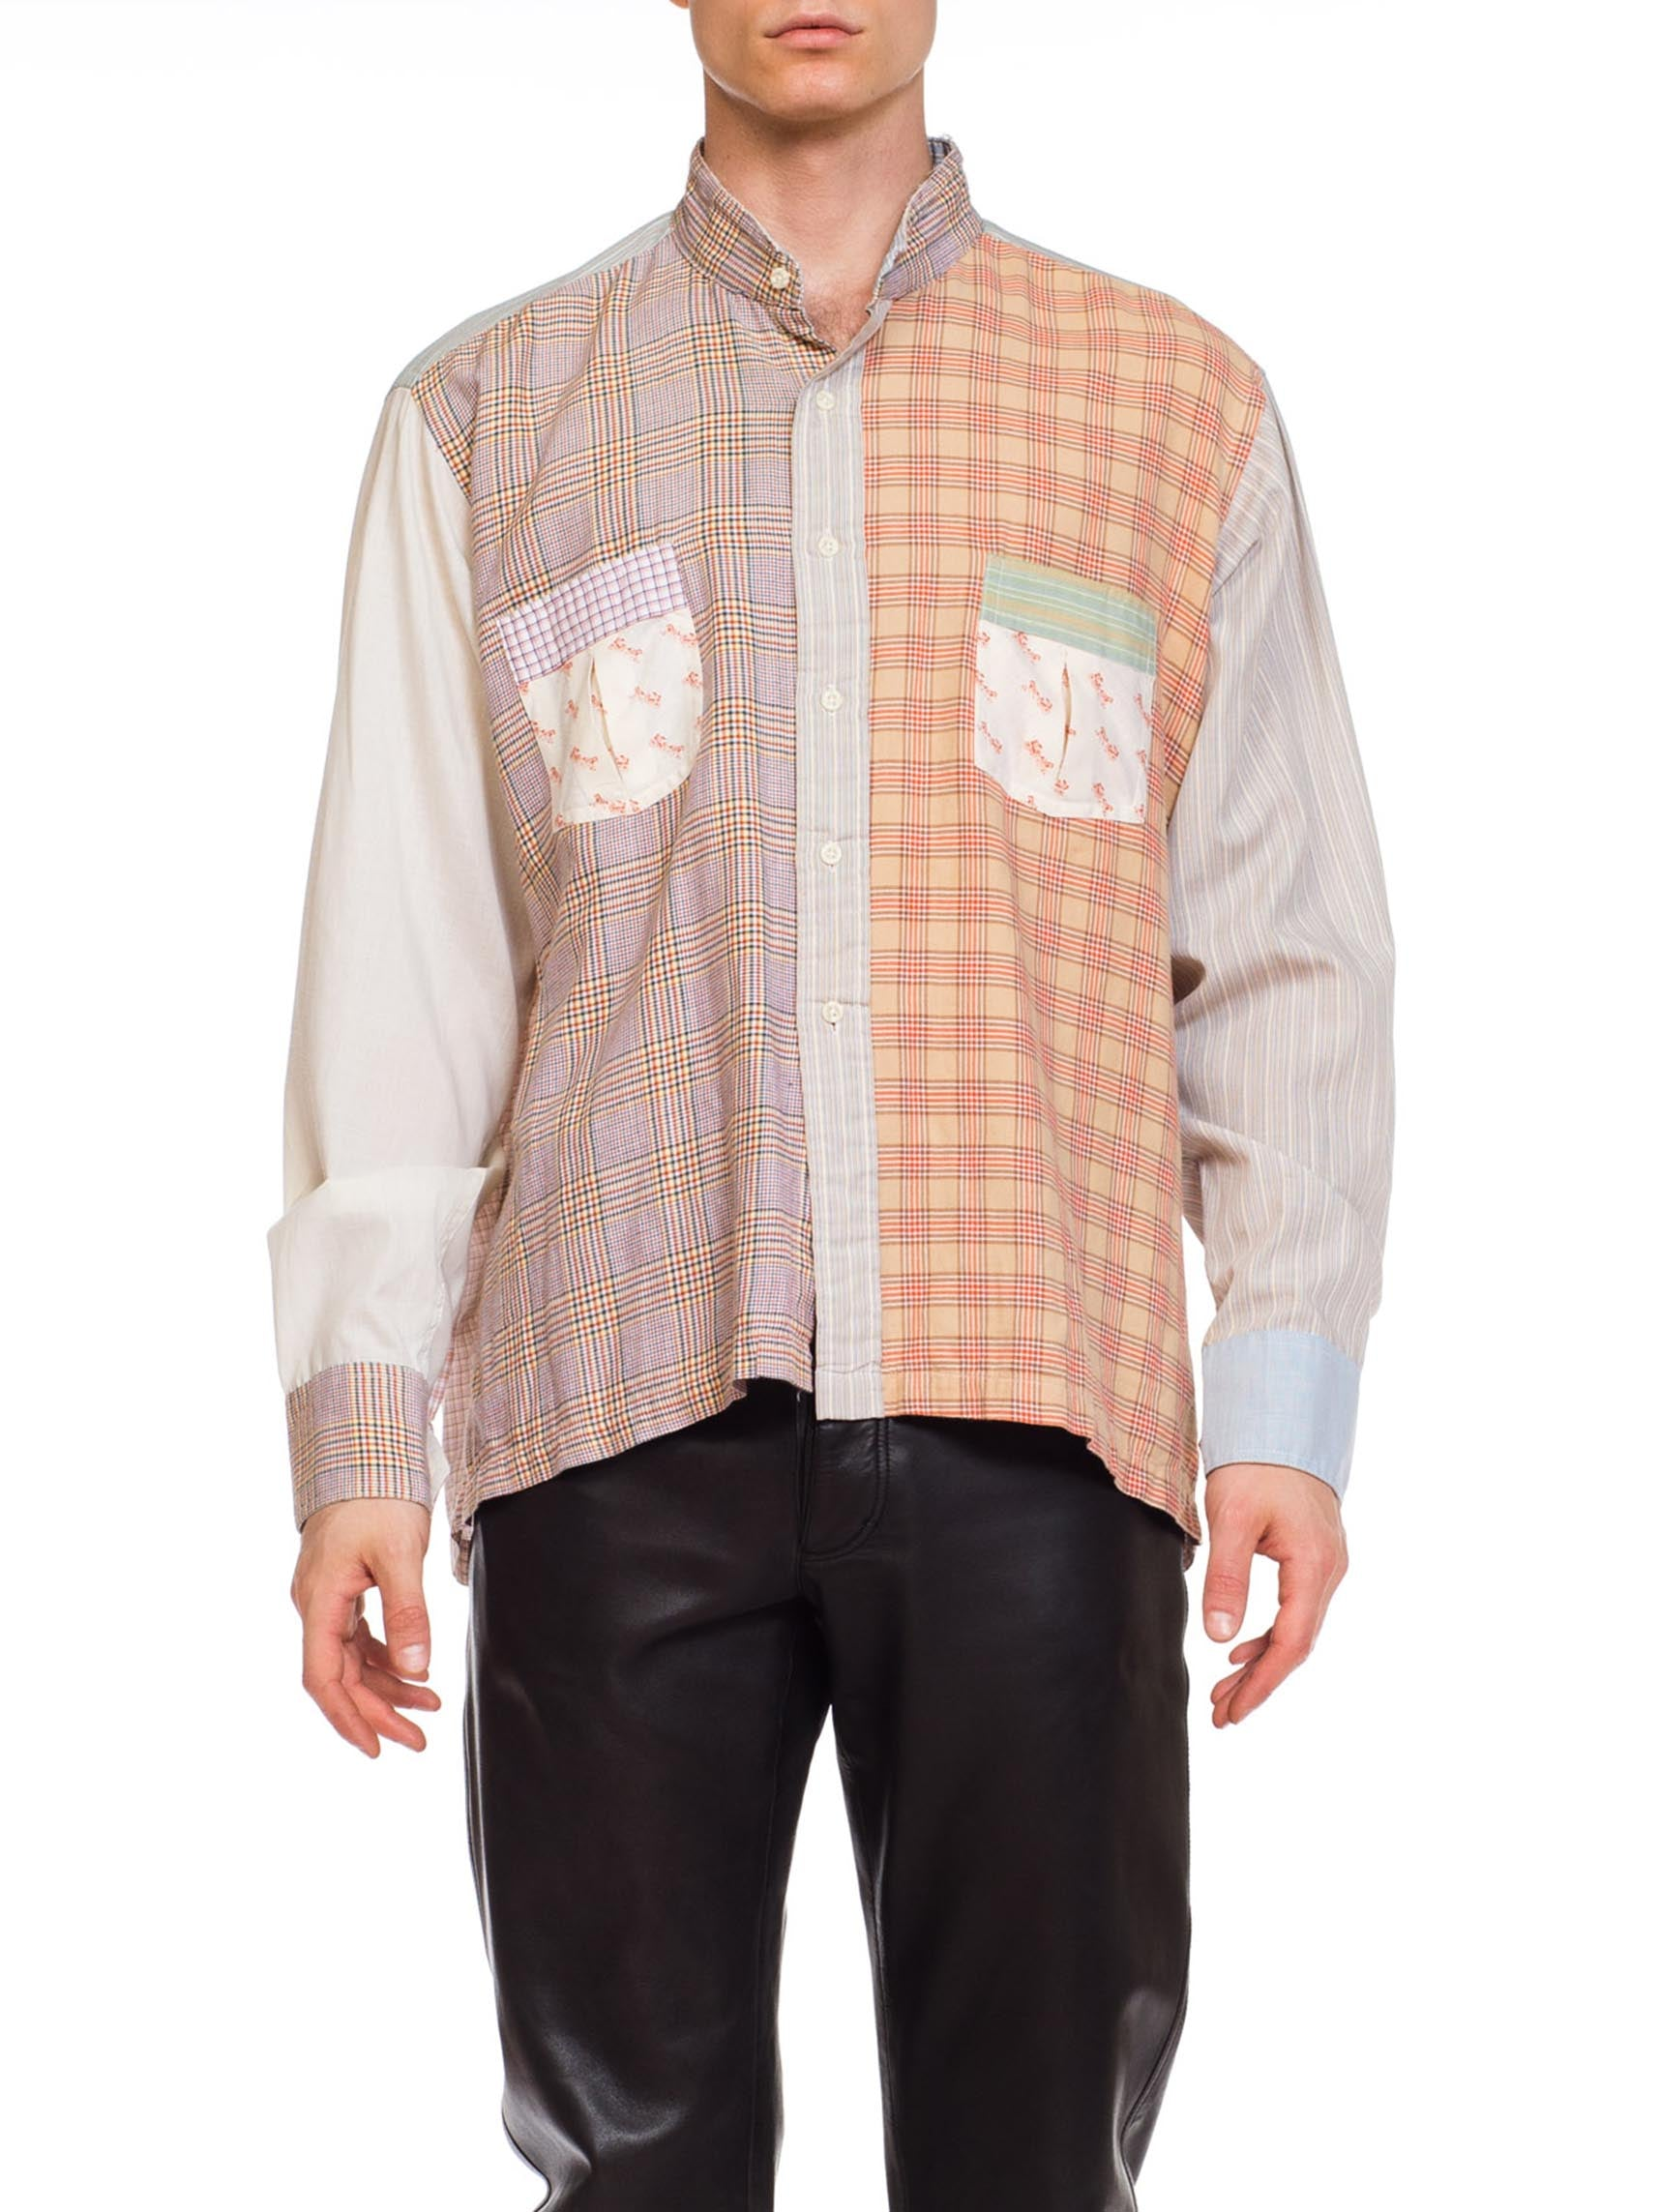 1970S BLOOMINGDALES Cotton Men's Patchwork Plaid Collarless Shirt